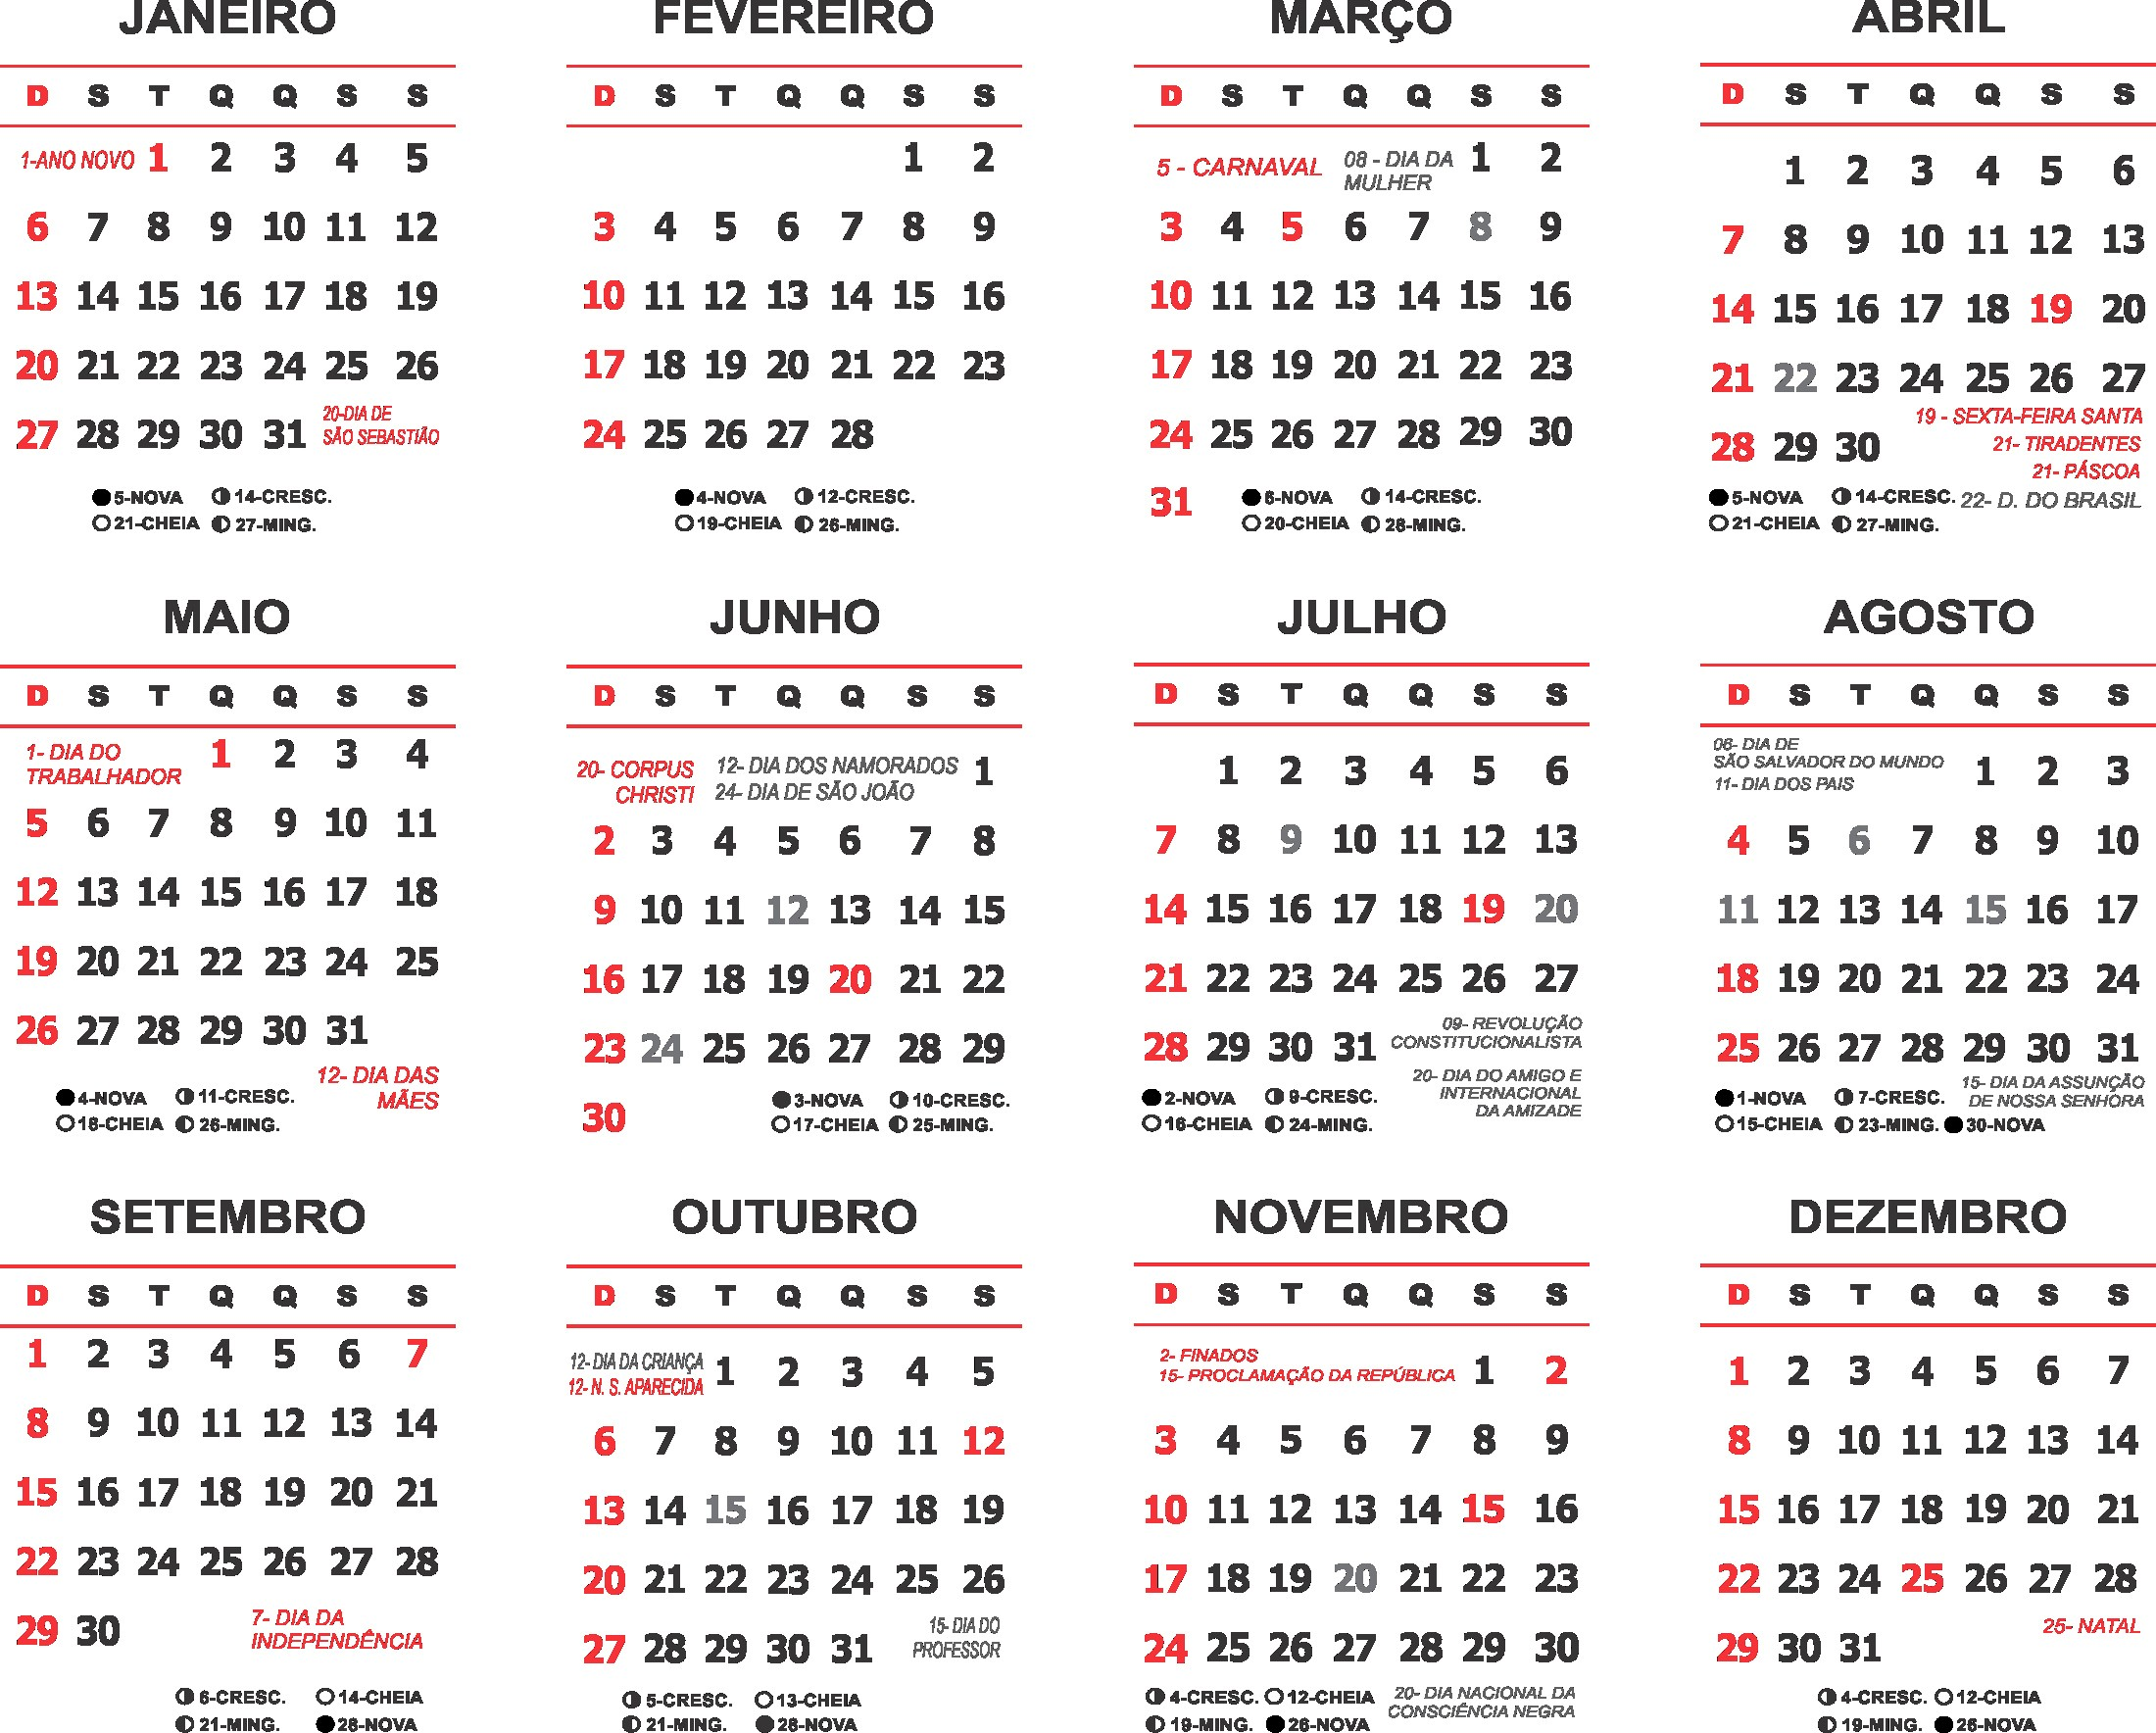 calendario carreras chile 2019 calendario carreras chile 2019 base calendario 2019 simples feriados imagem legal